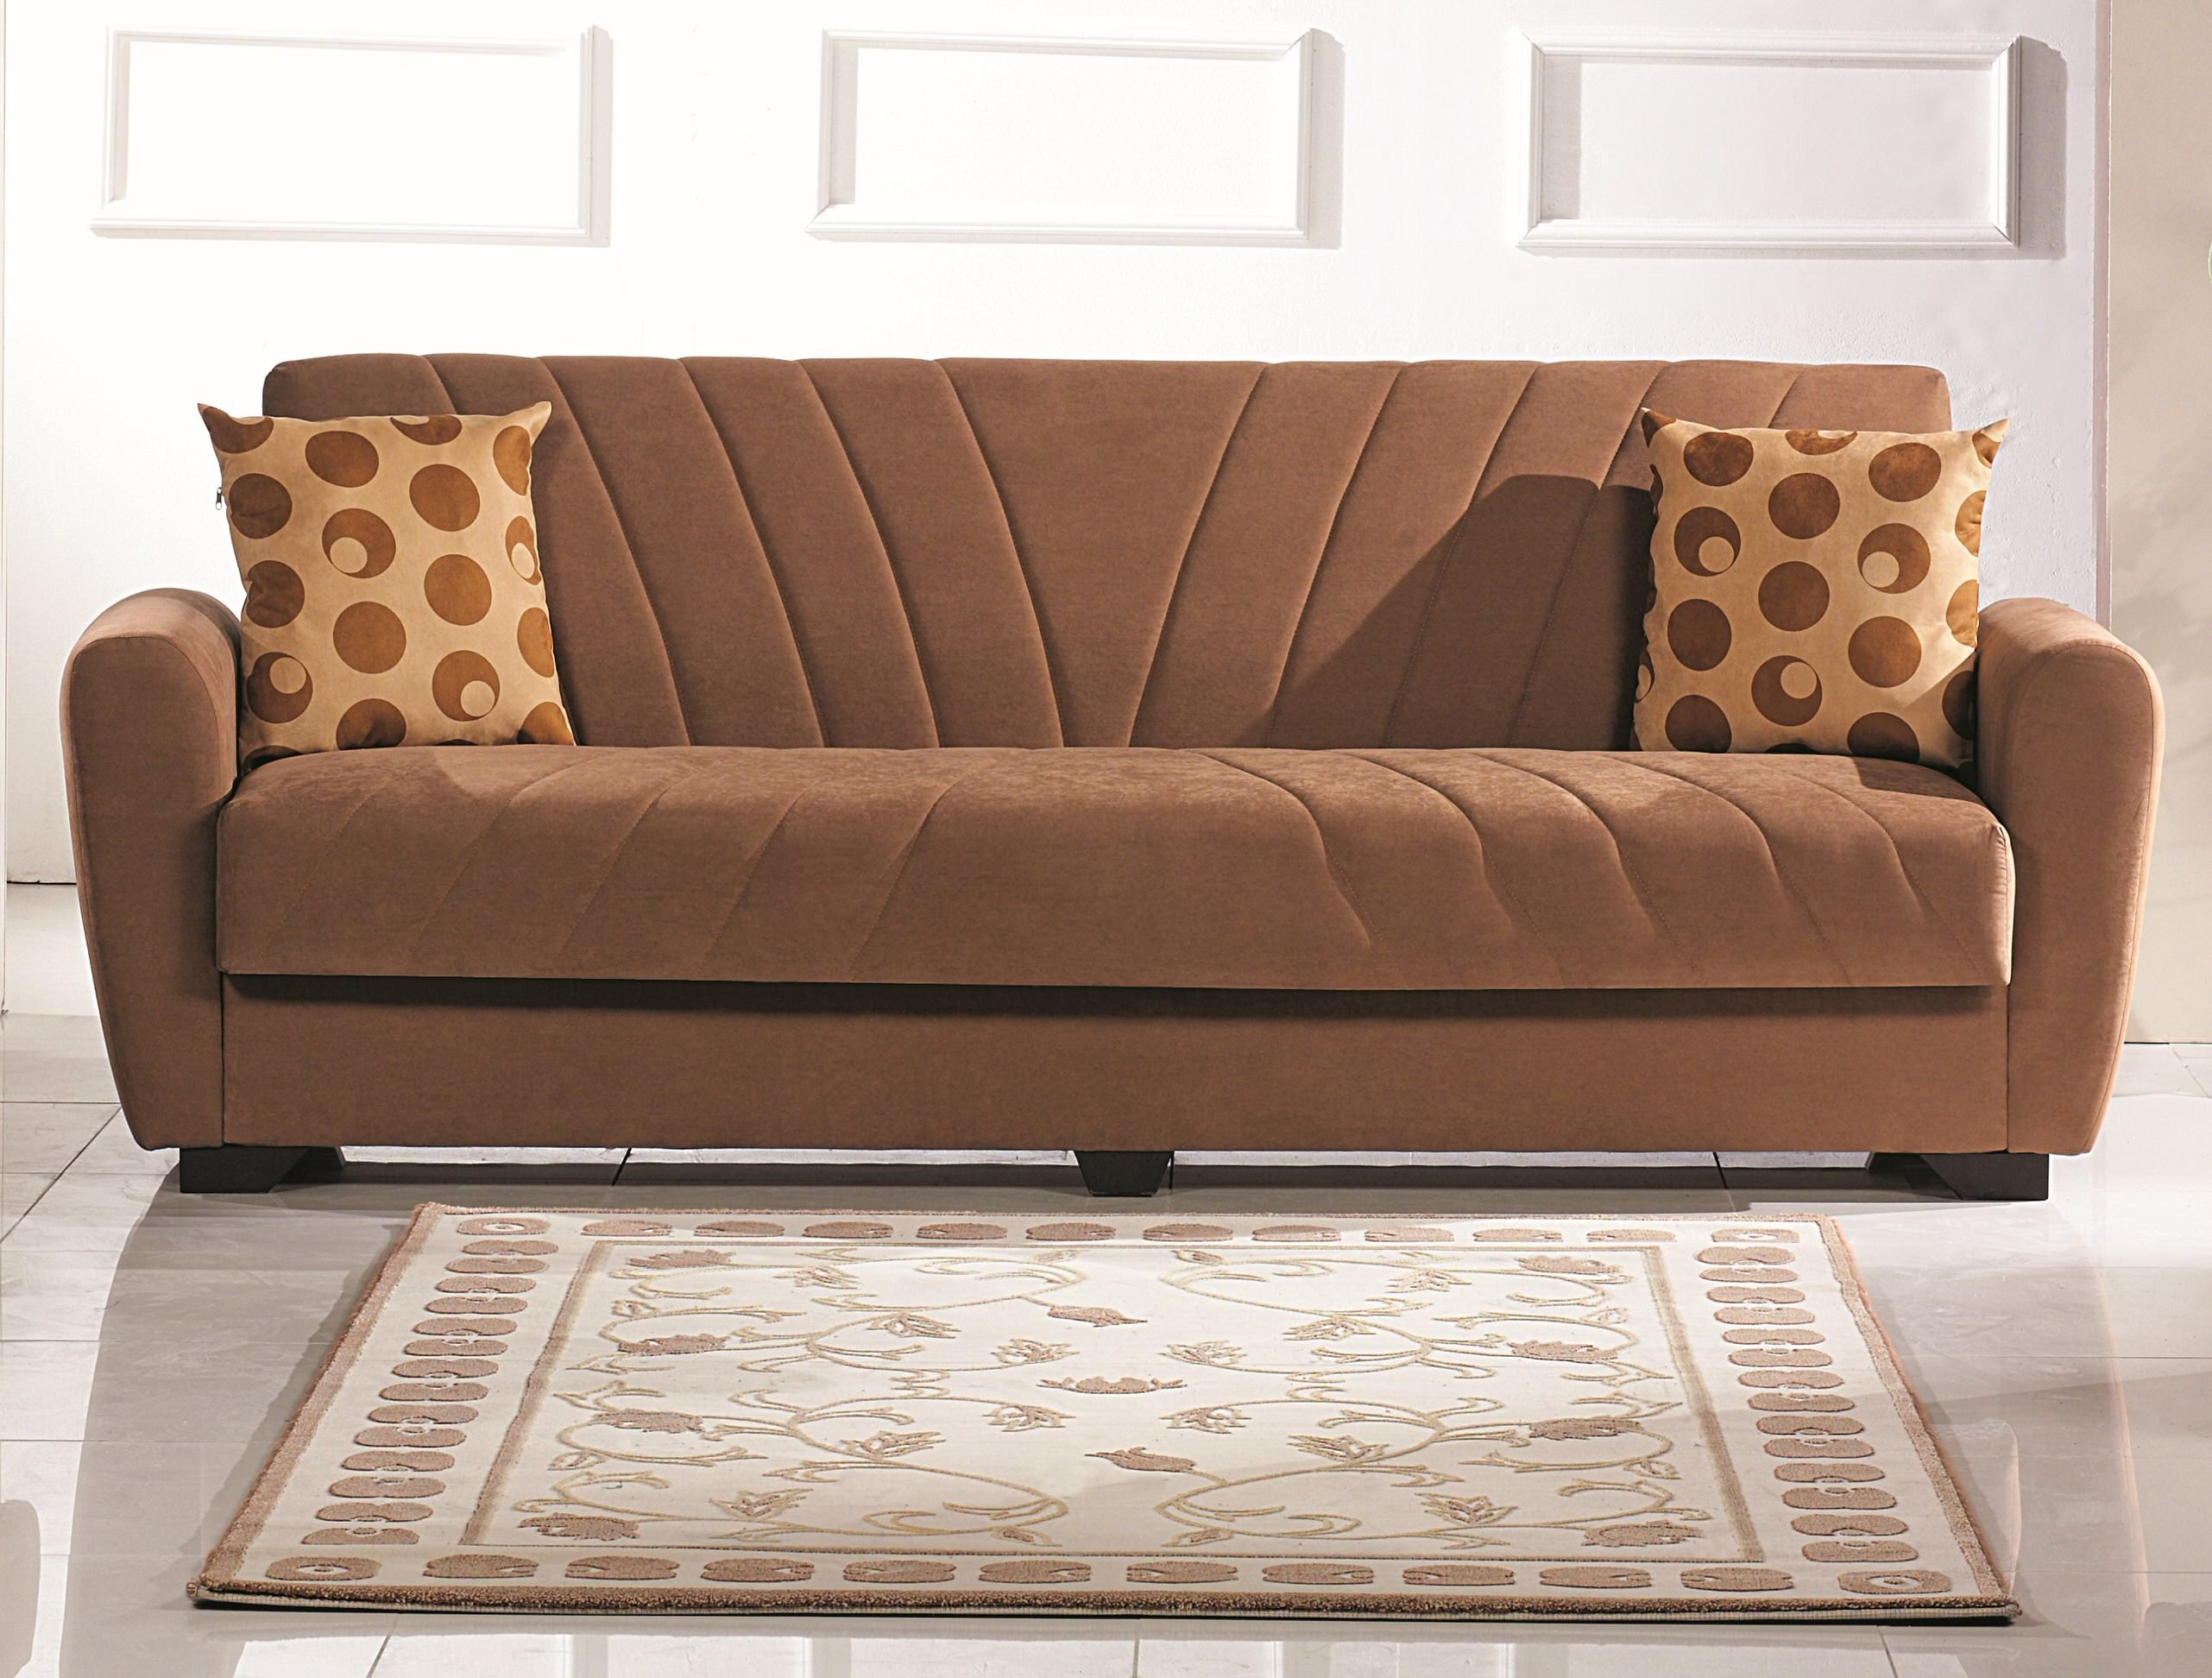 Tampa Sofa Bed by Empire Furniture USA